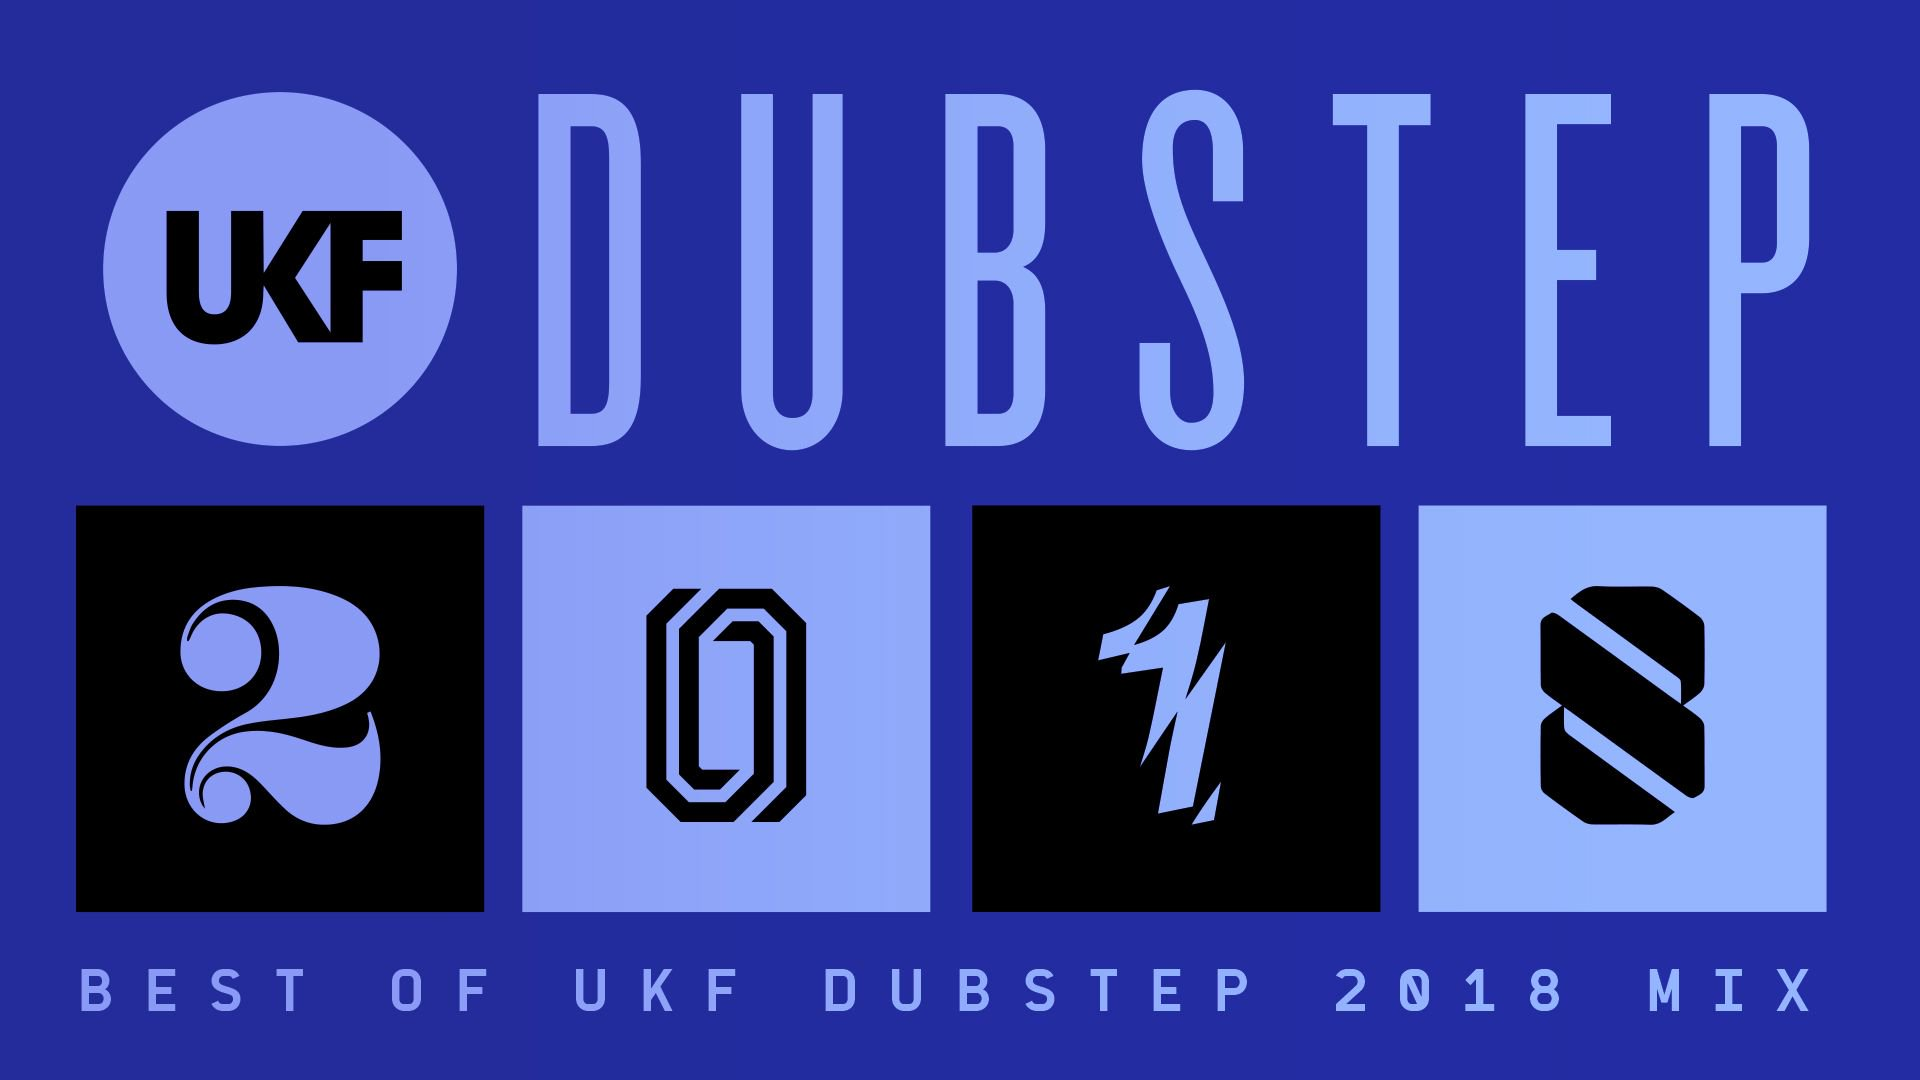 Ukf On Twitter Presenting The Best Of Ukf Dubstep 2018 Mix